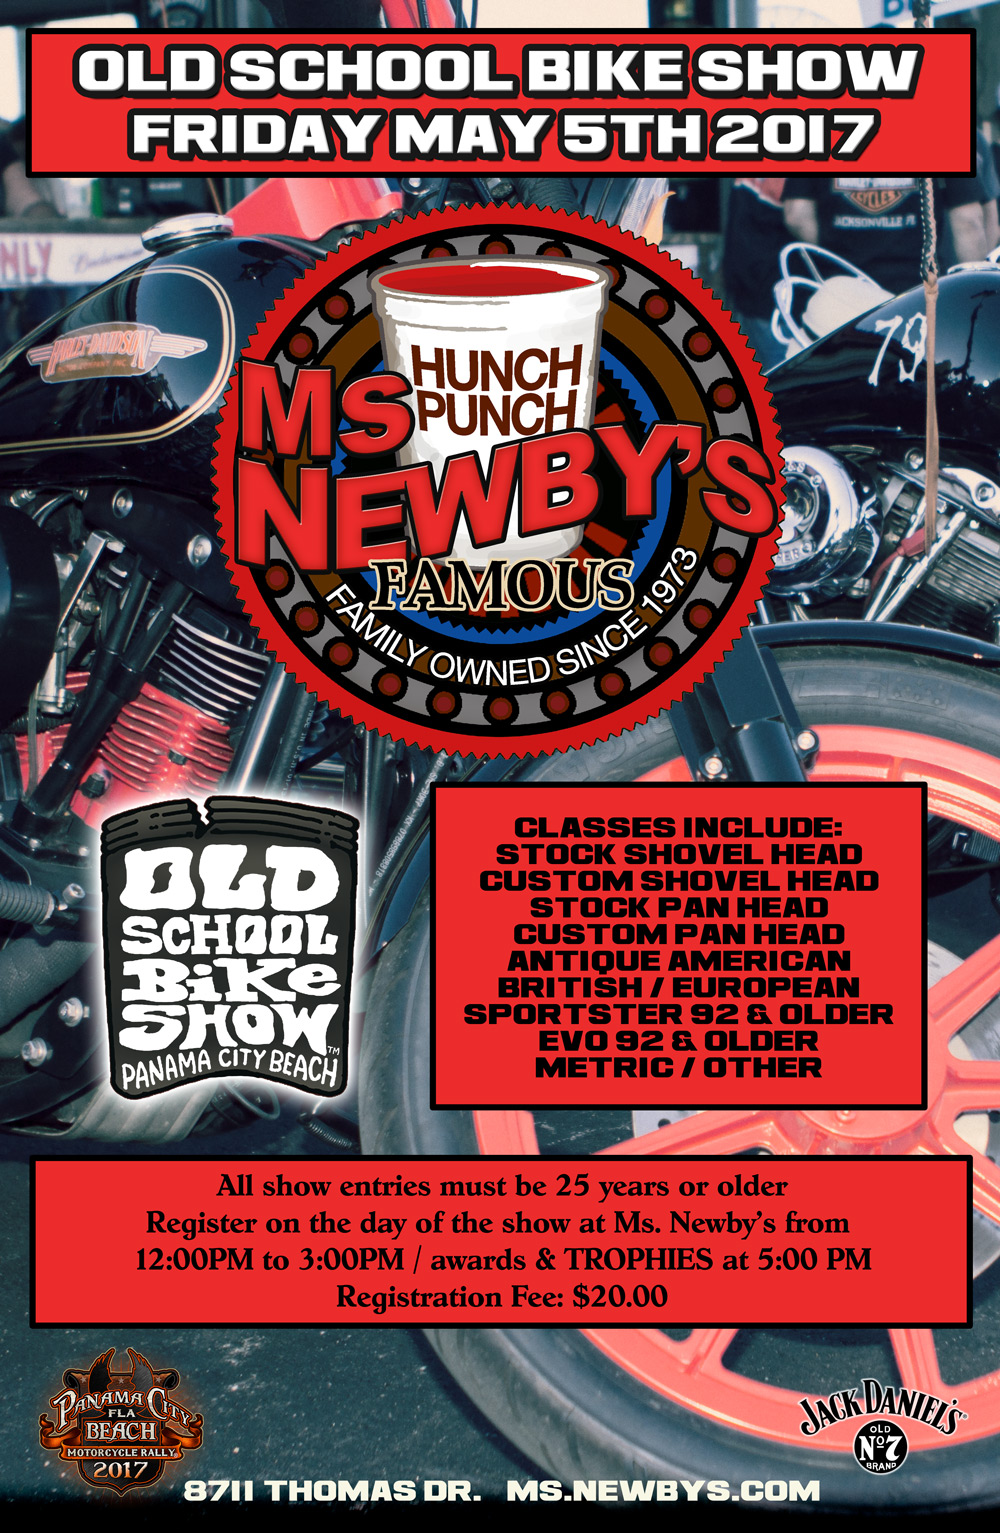 Ms. Newby's Old School Bike Show Poster